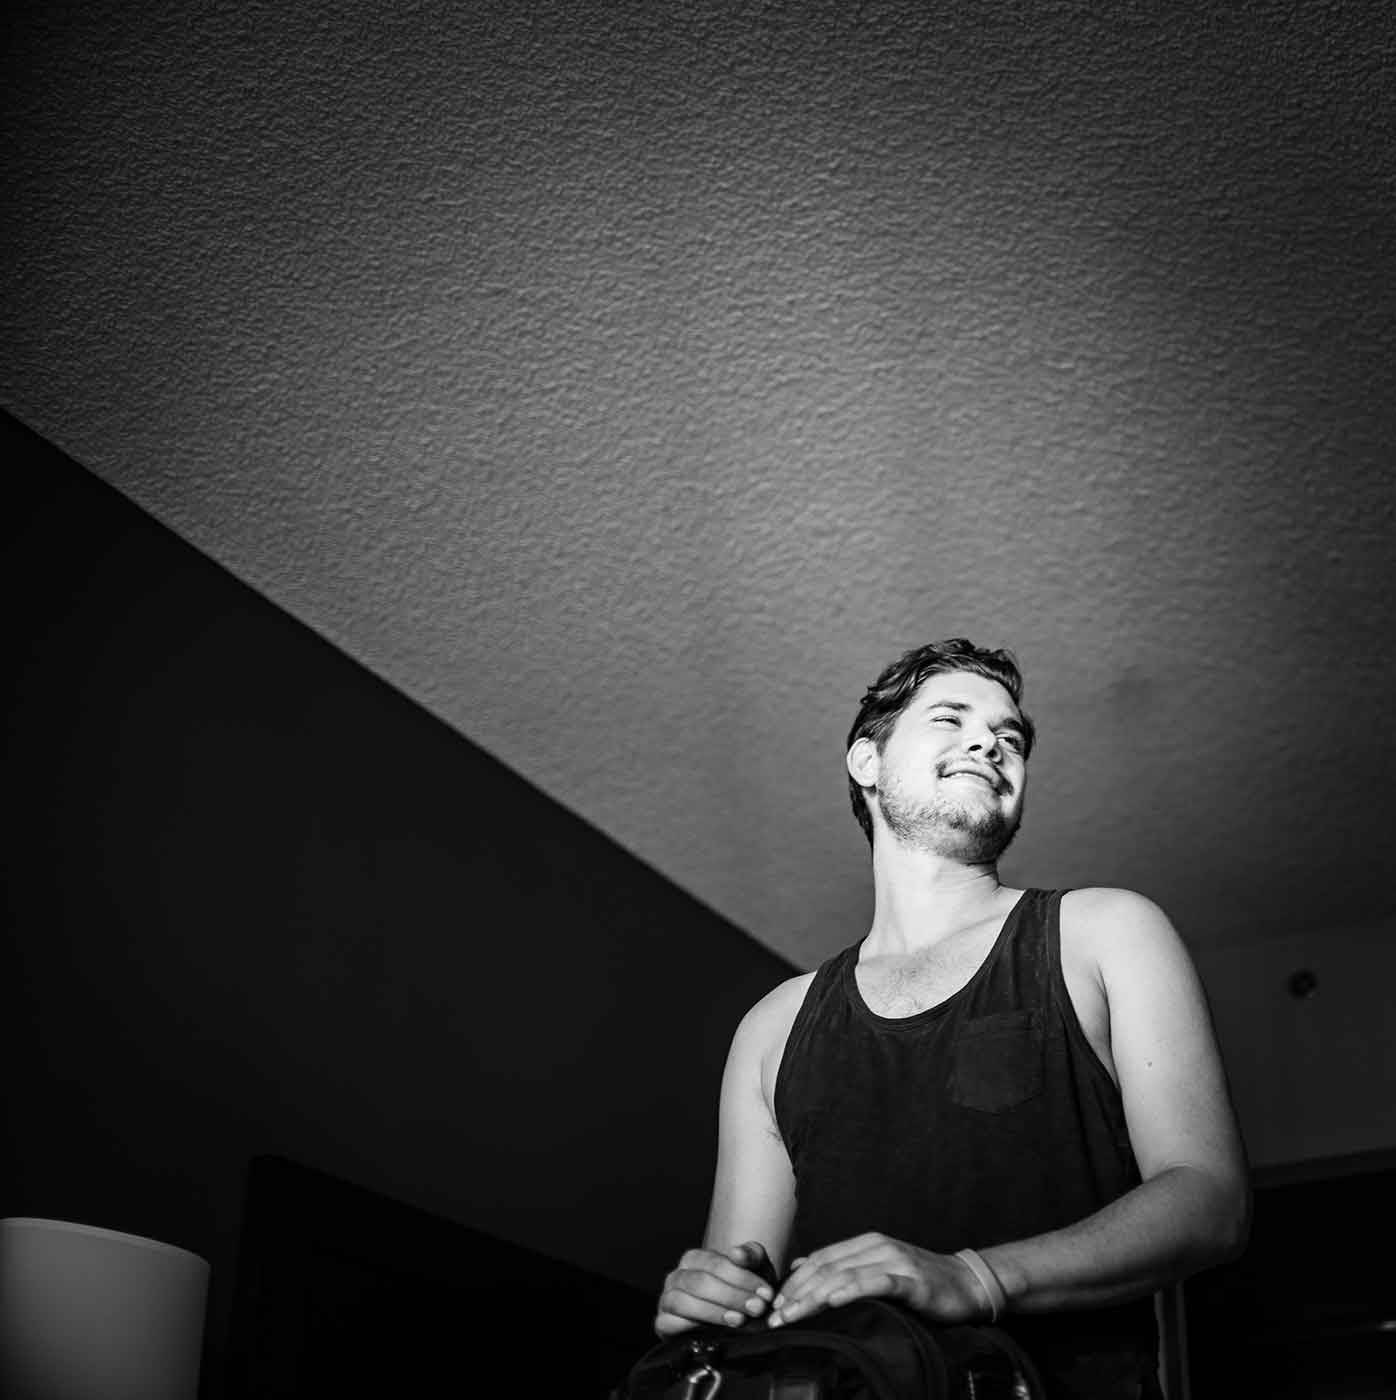 smlSan-Diego-Vacation---August-2015-17.jpg